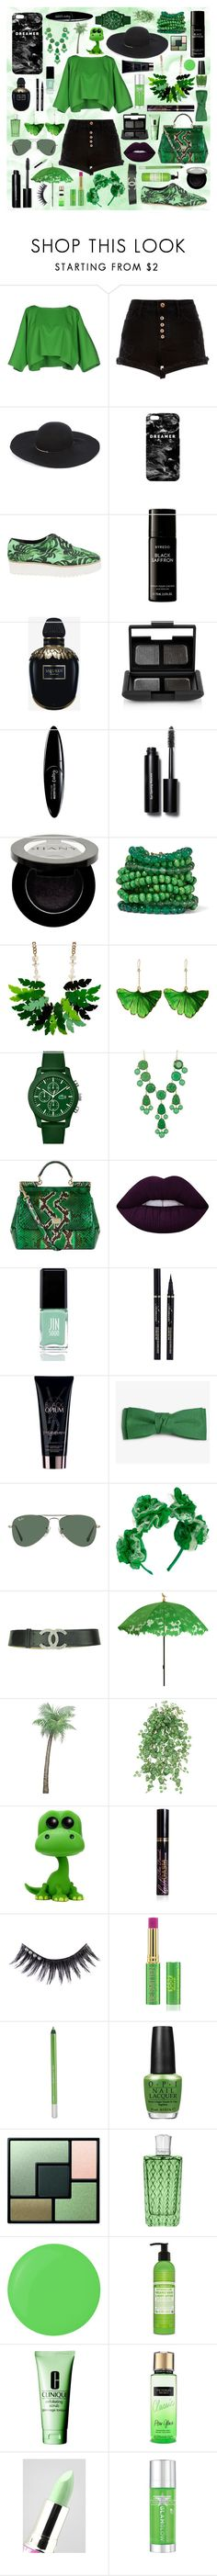 """""""Summer Hat Fun!"""" by daisyxz ❤ liked on Polyvore featuring Maison About, River Island, Eugenia Kim, Mr. Gugu & Miss Go, Byredo, Alexander McQueen, NARS Cosmetics, Maybelline, Bobbi Brown Cosmetics and Shany"""